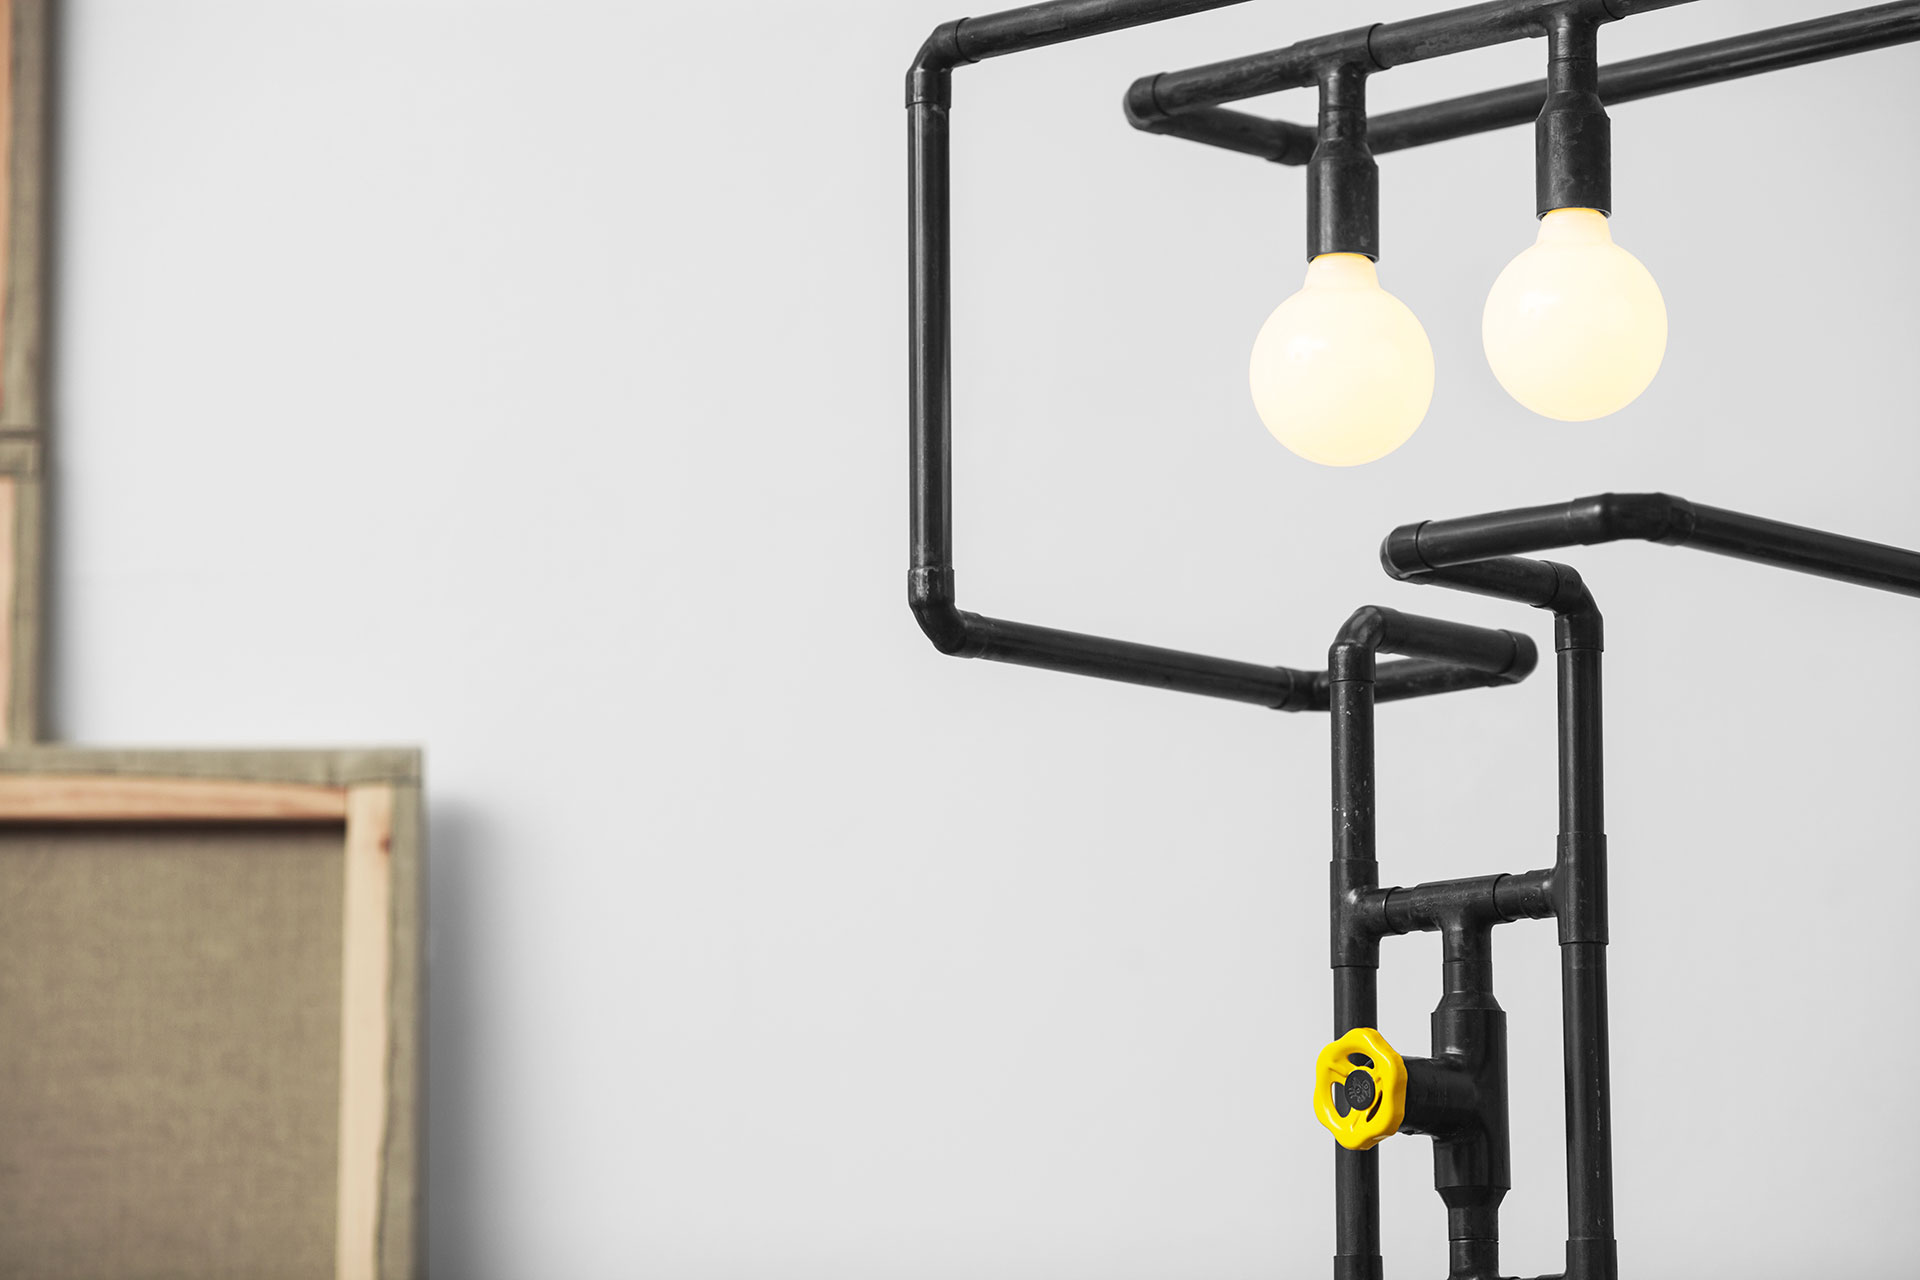 Funny dimmable floor lamp with yellow knob made of copper pipes in natural black patina